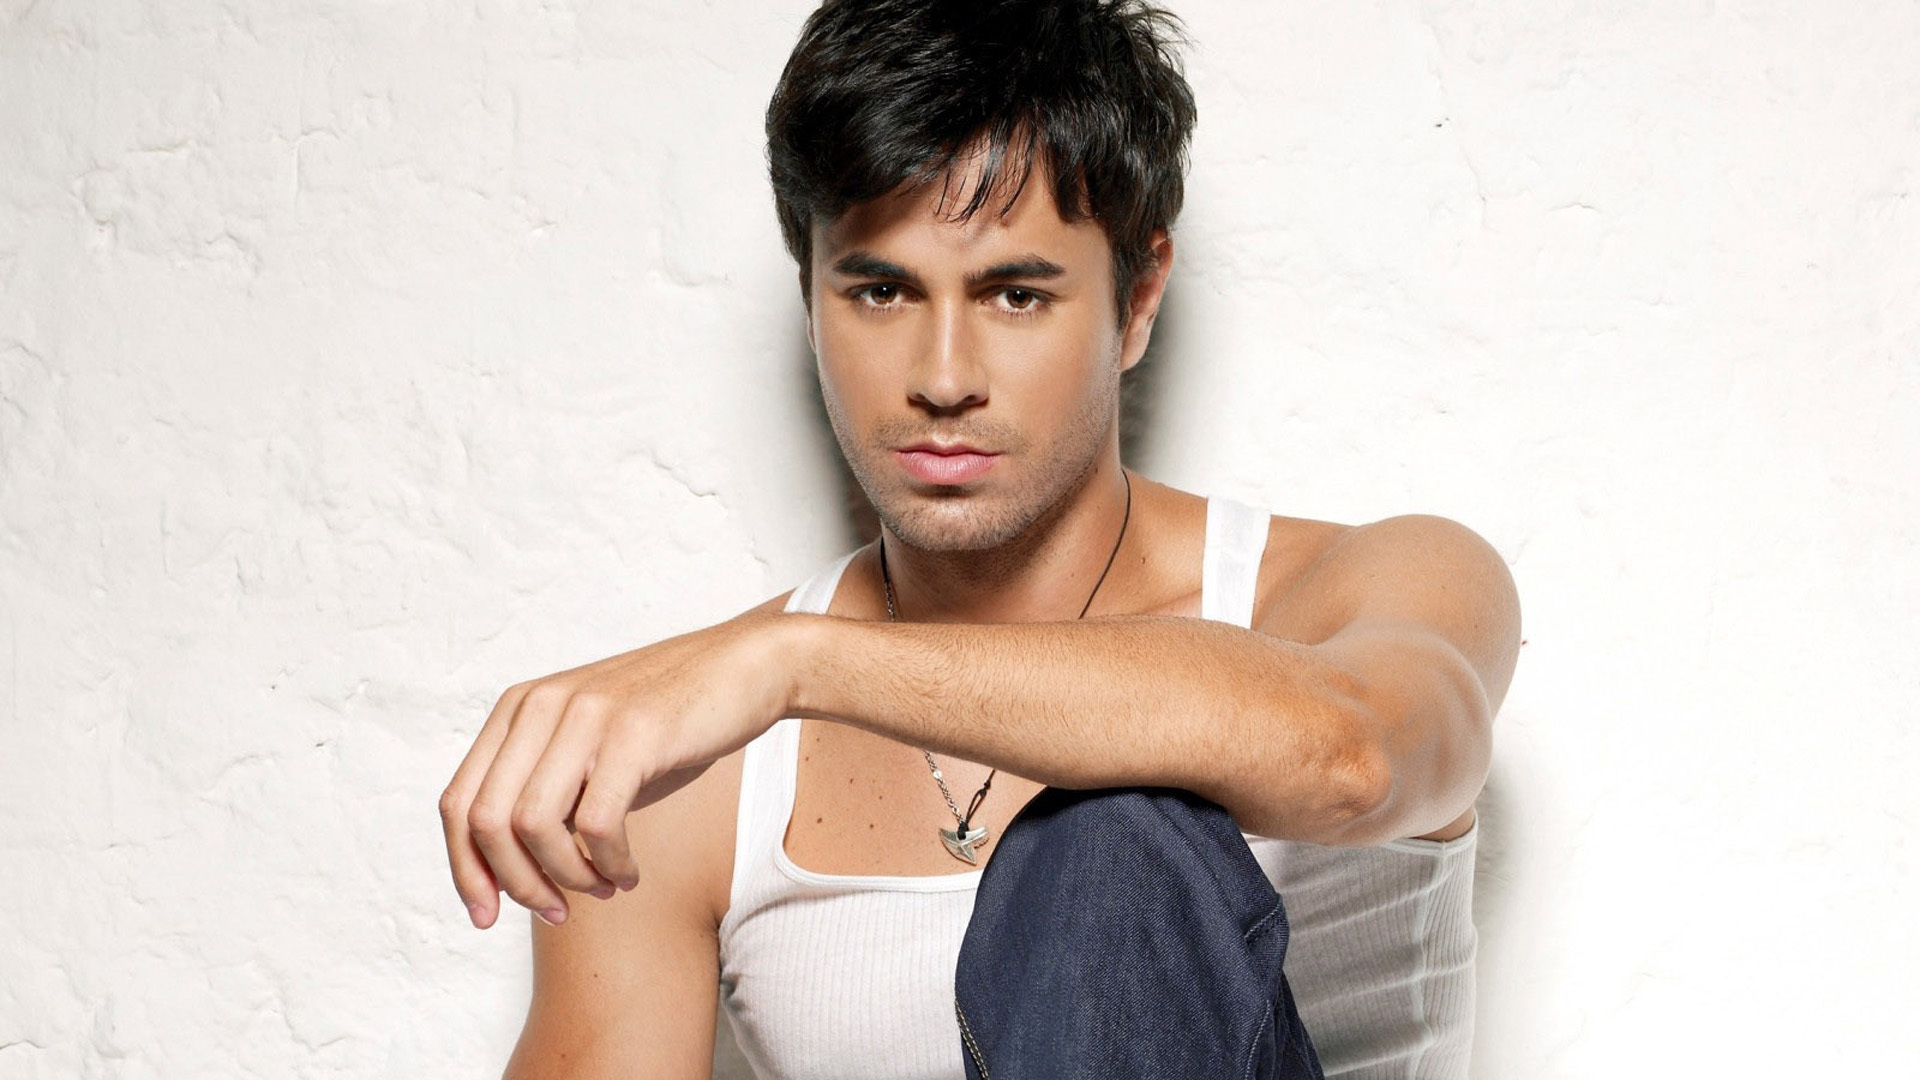 Enrique Iglesias Widescreen